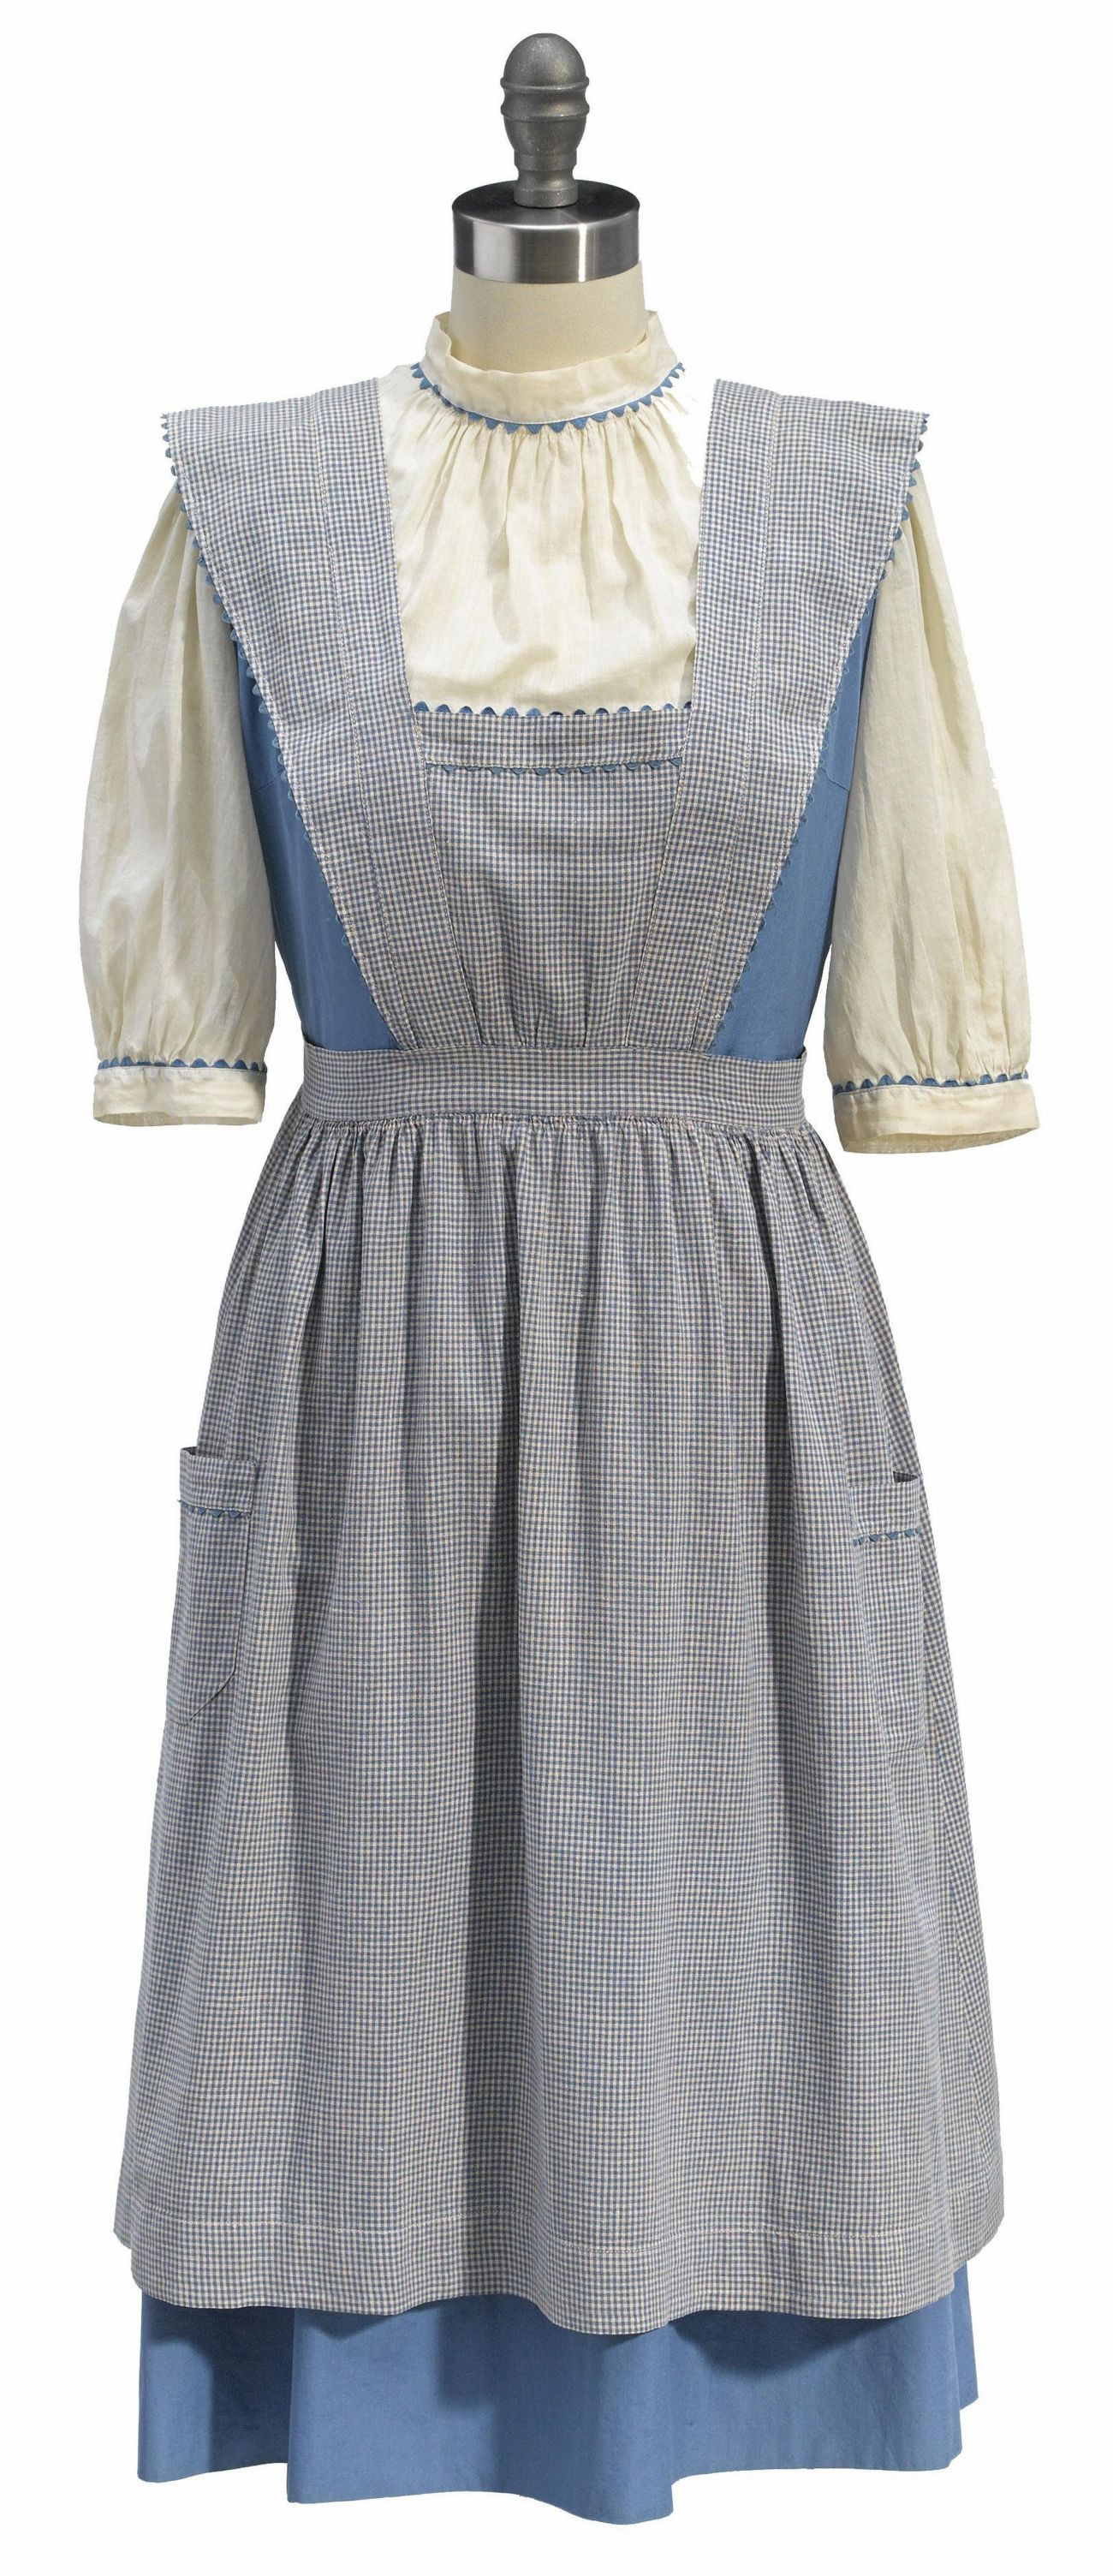 Lot 127 - A Dorothy test dress and pinafore from The Wizard of Oz - 1